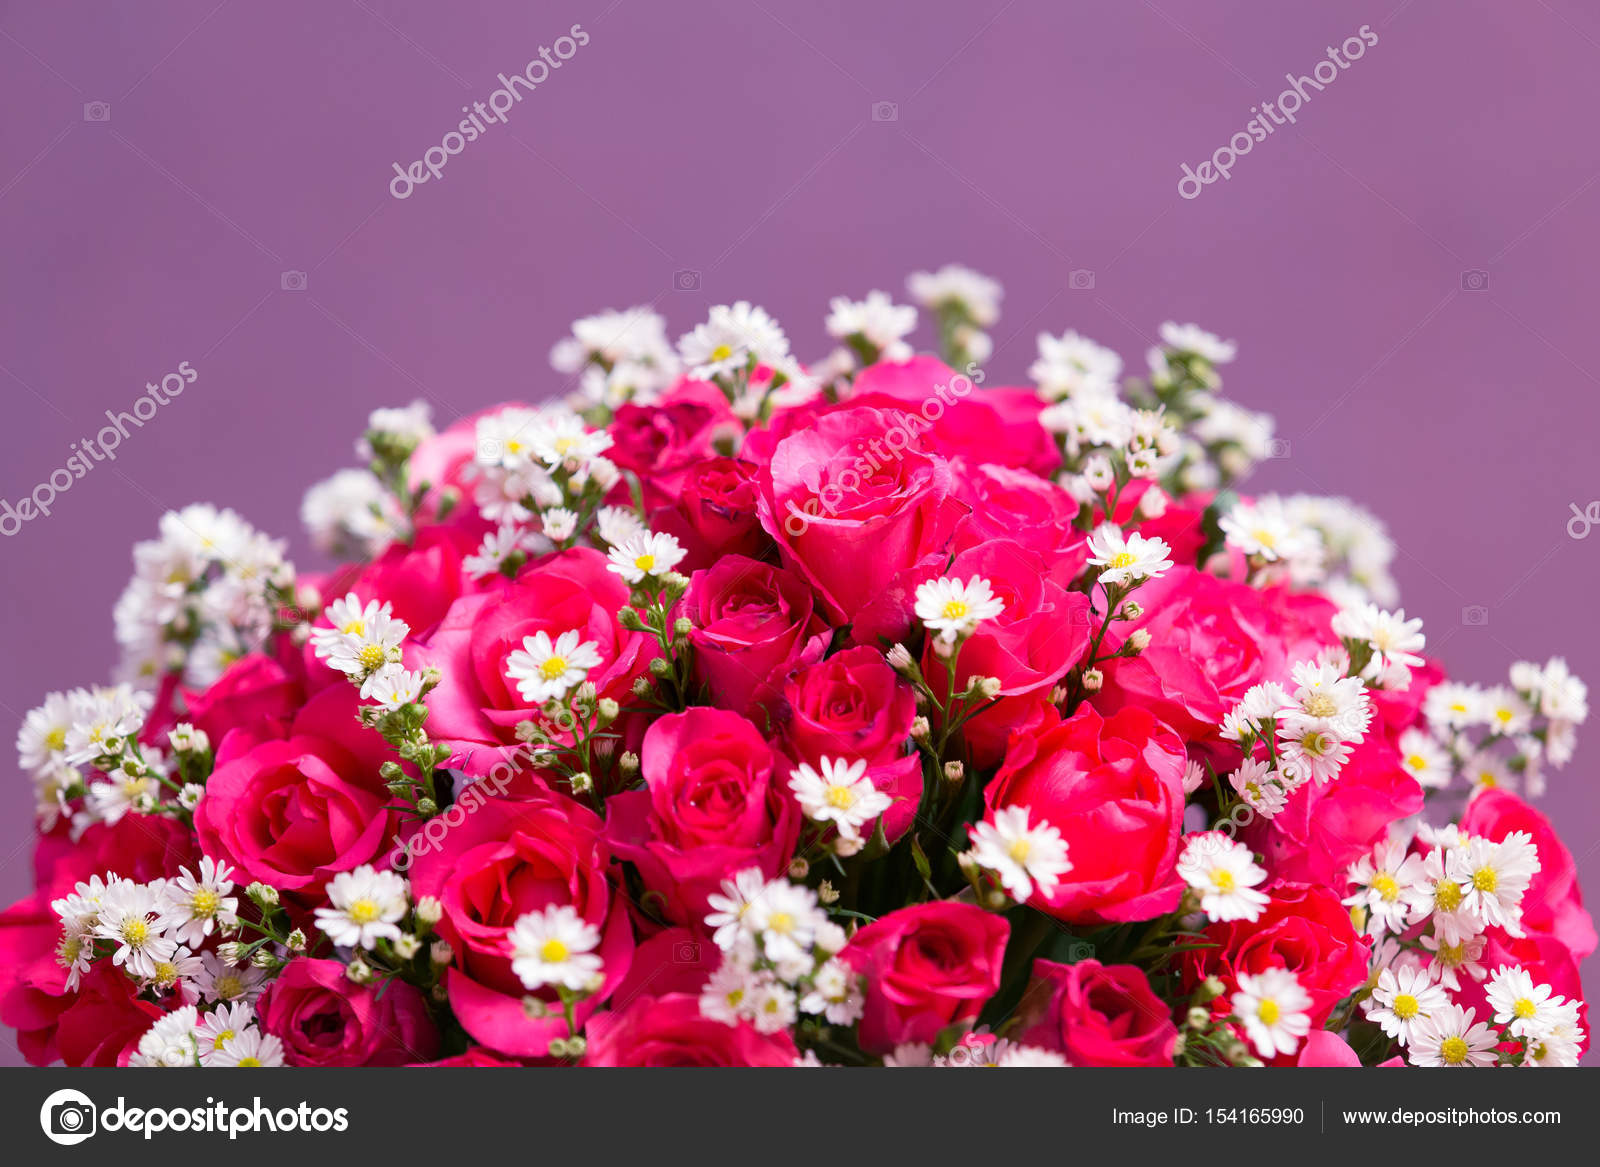 Beautiful roses and little daisy flowers background stock photo beautiful roses and little daisy flowers background photo by ltdedigos izmirmasajfo